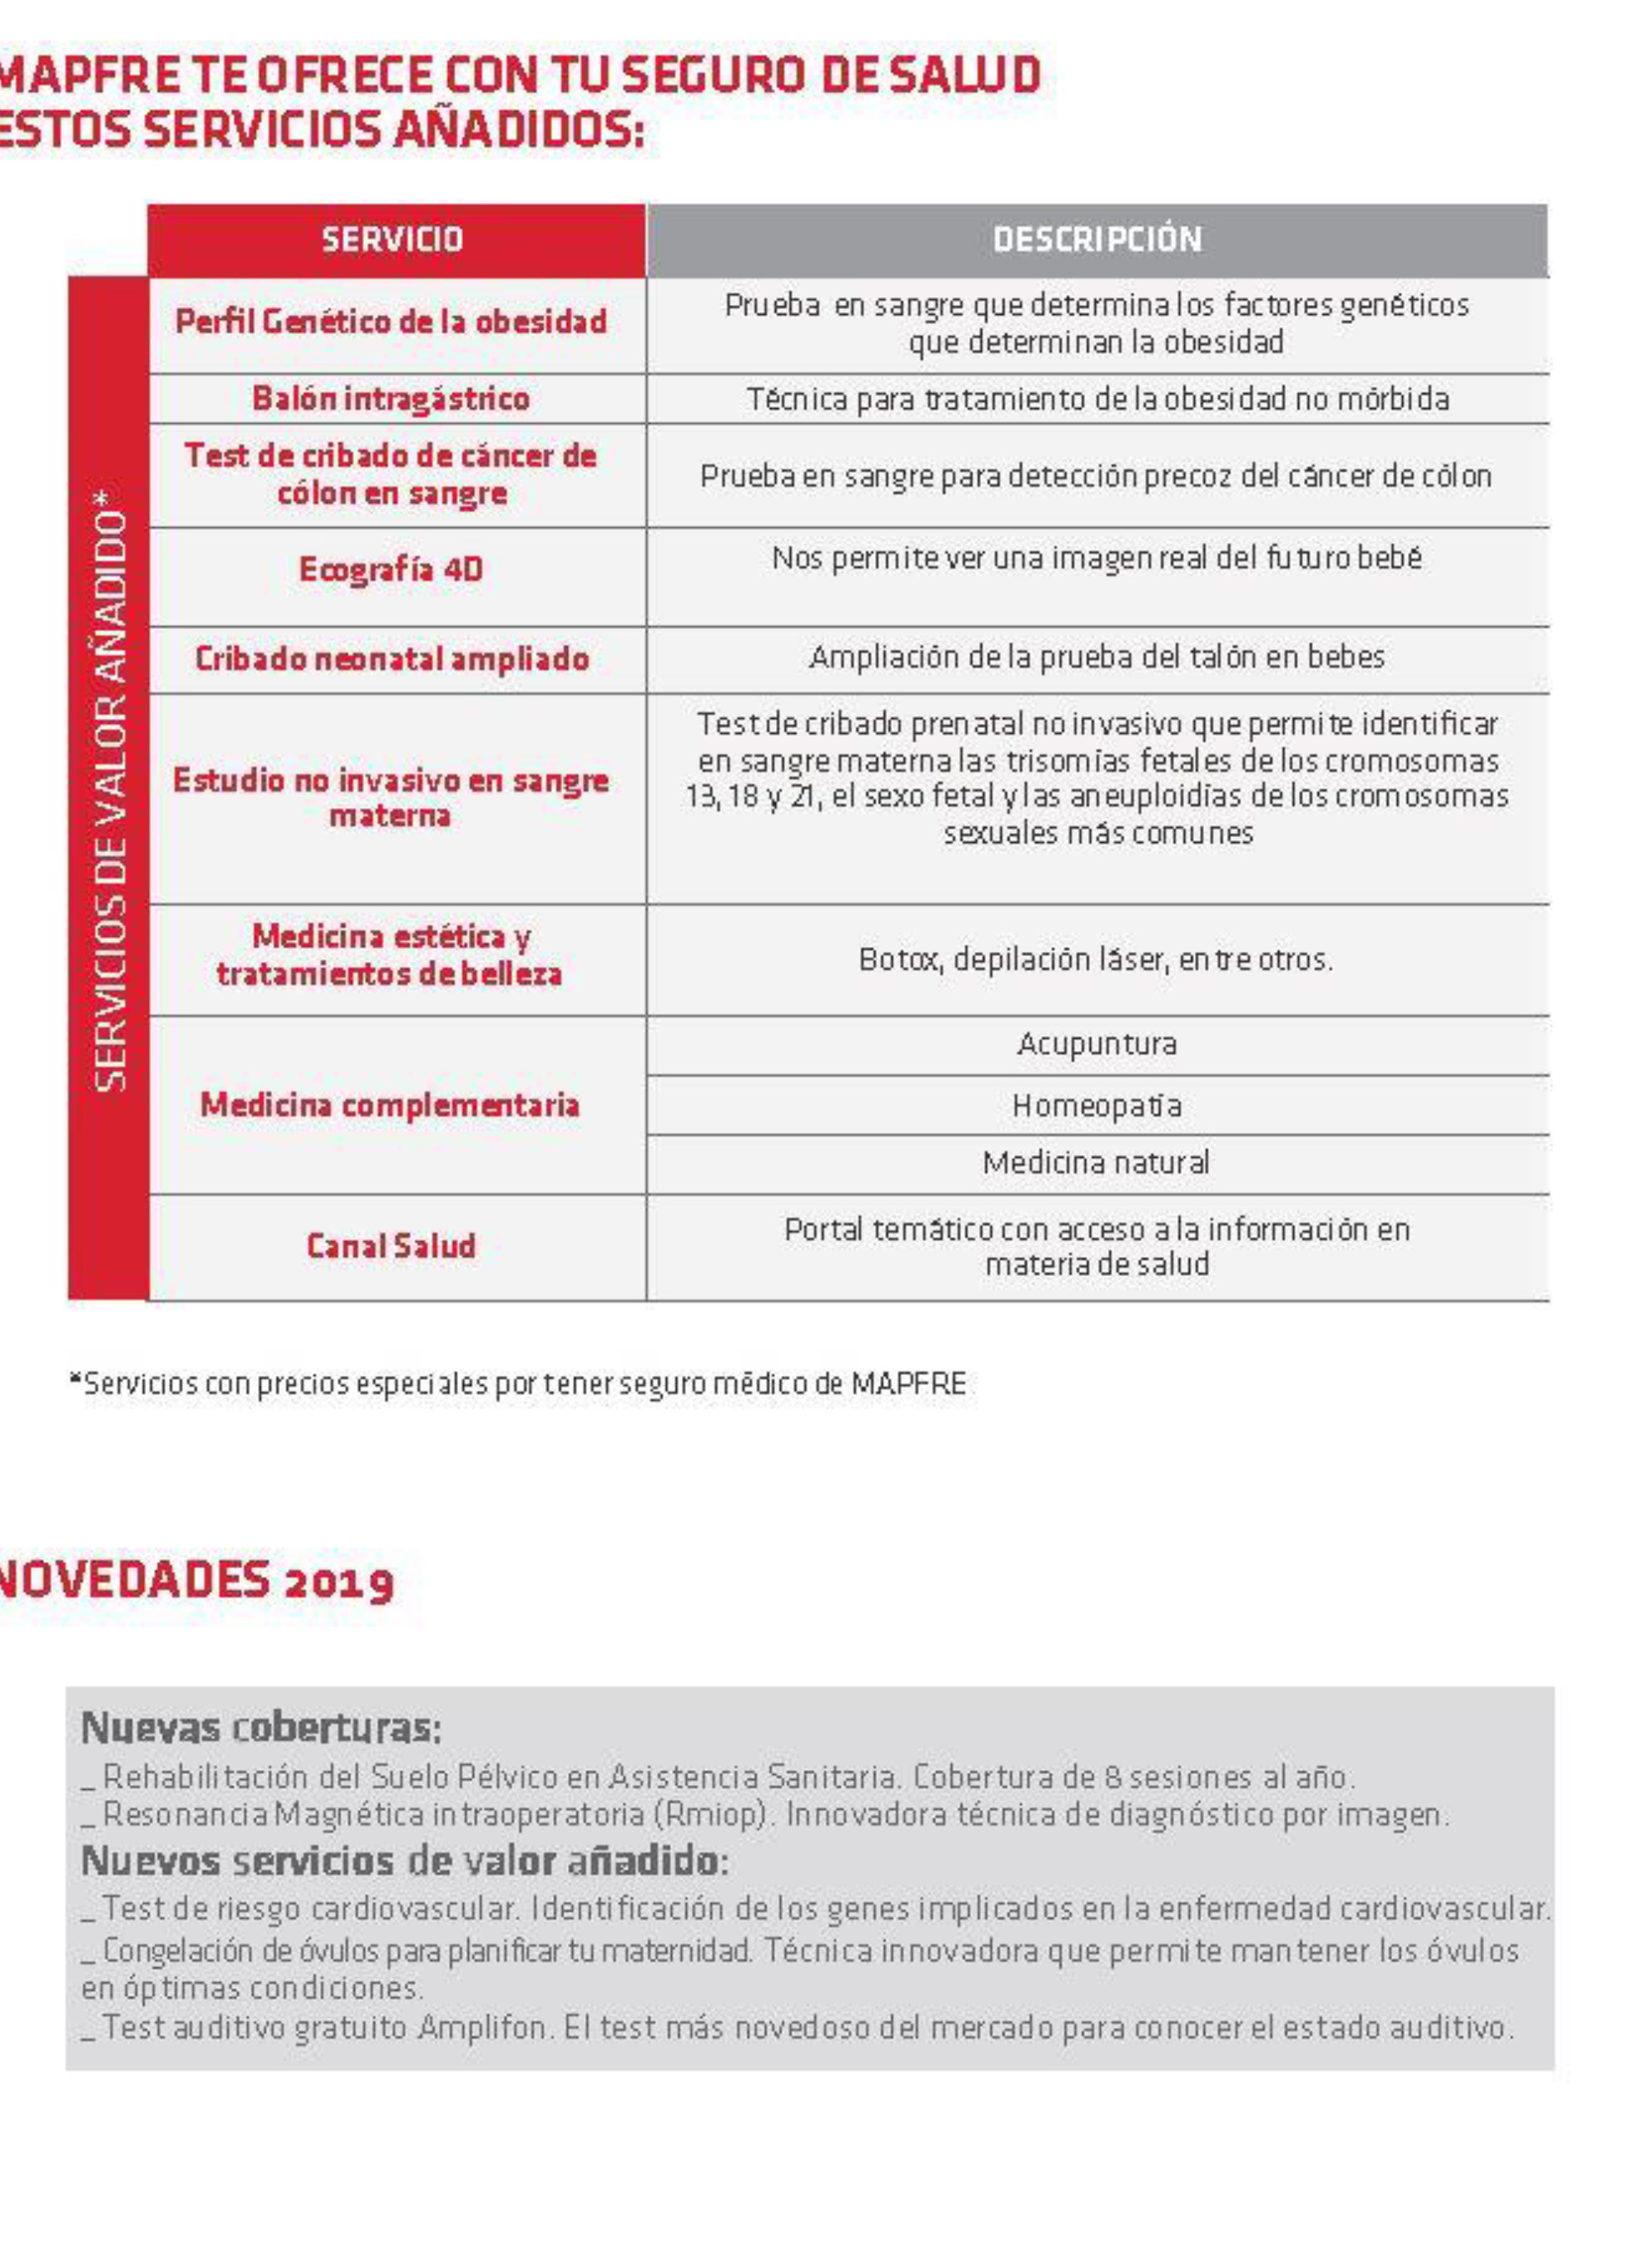 oferta mapfre pag 6